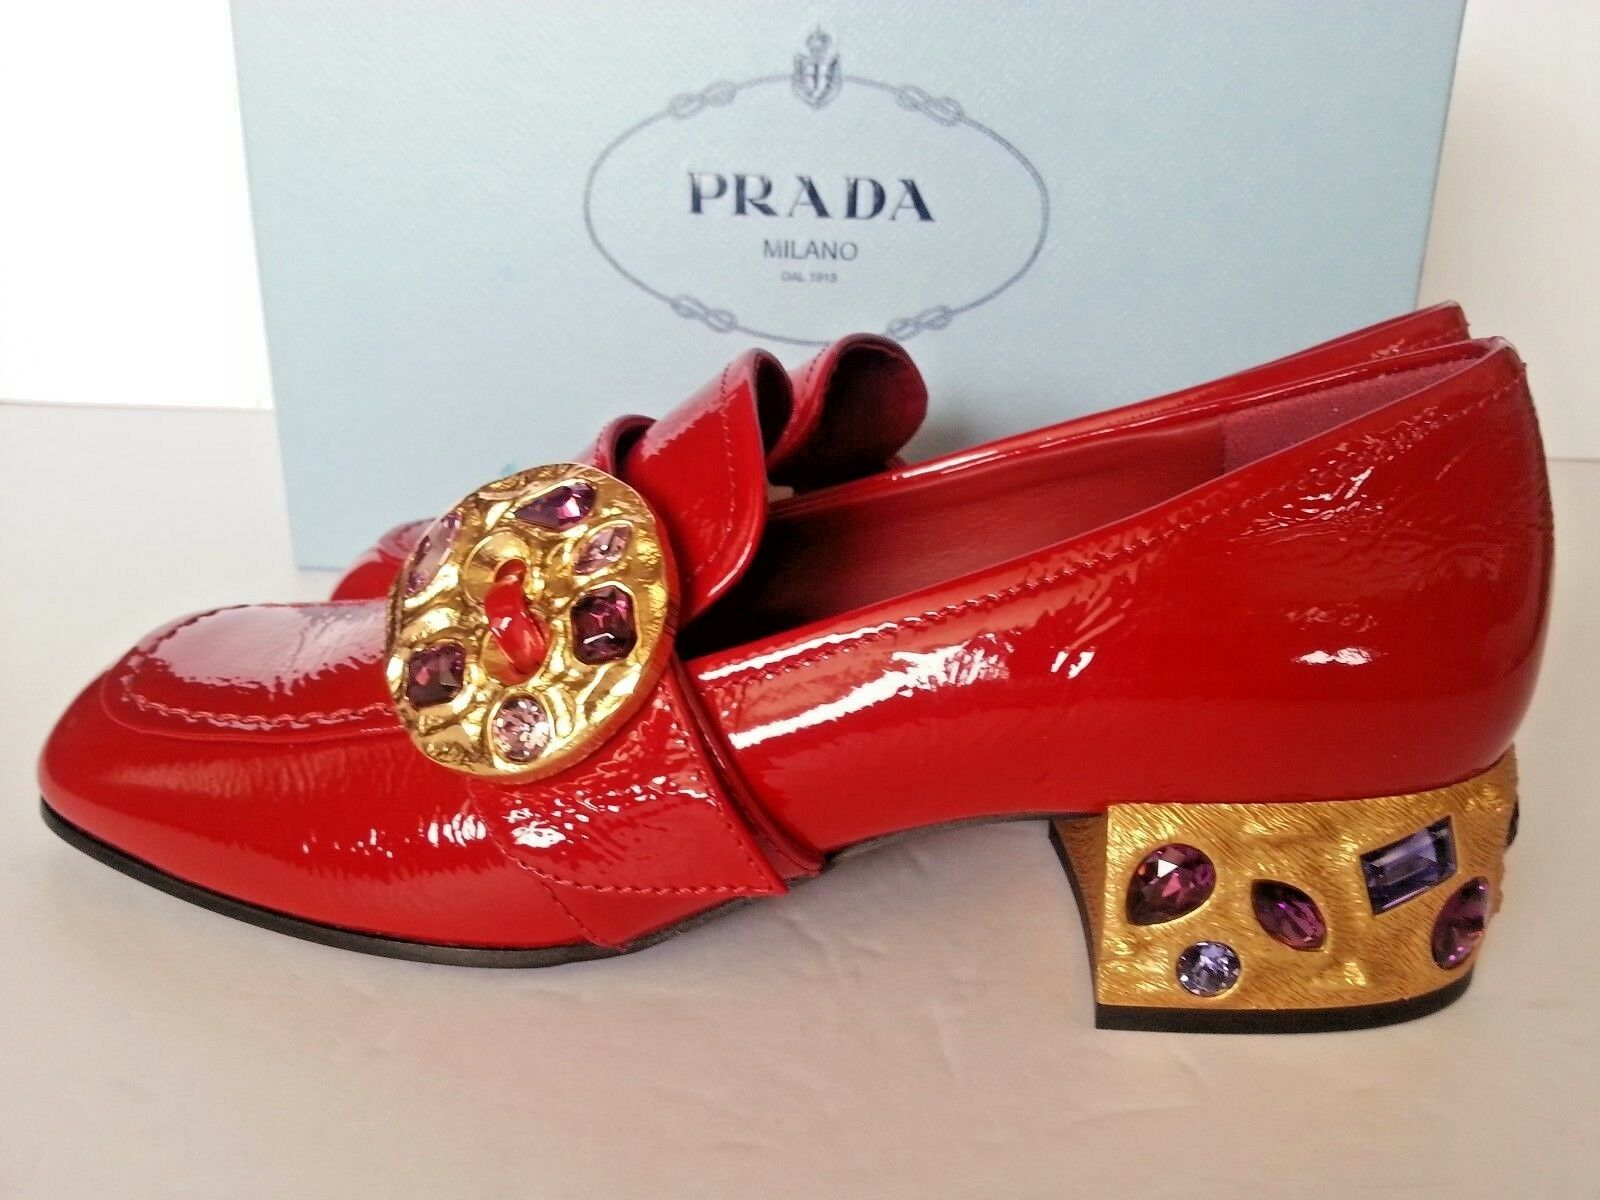 NEW PRADA Patent Embellished Embellished Embellished Jeweled 35mm Loafer schuhe Pump rot 37 dd2c25